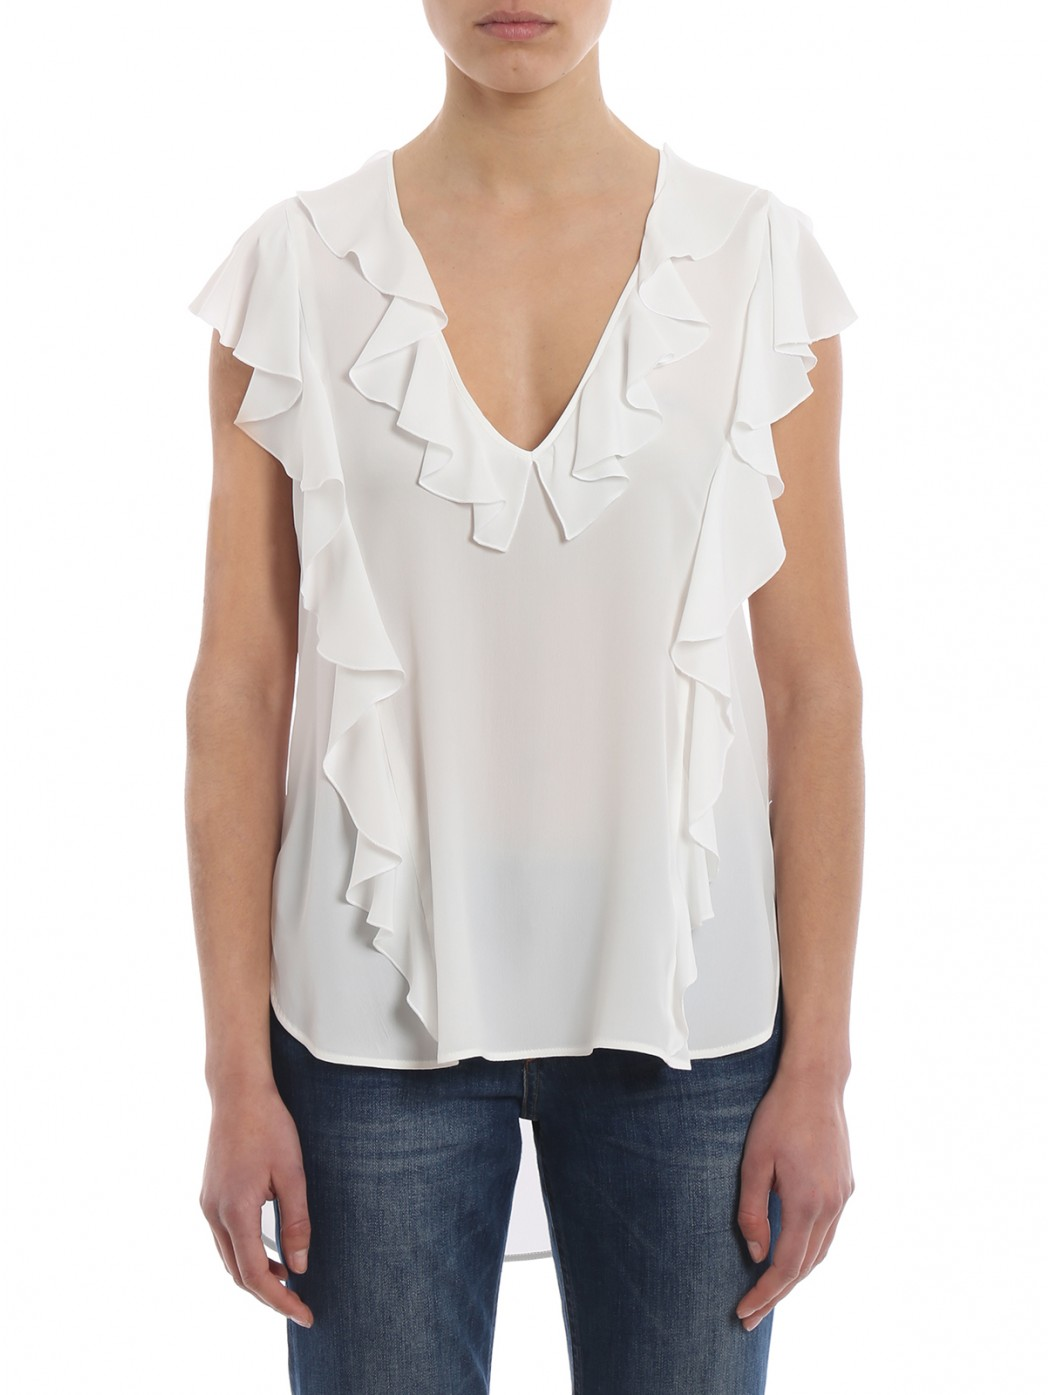 DONDUP DC042 000 CAMICIE